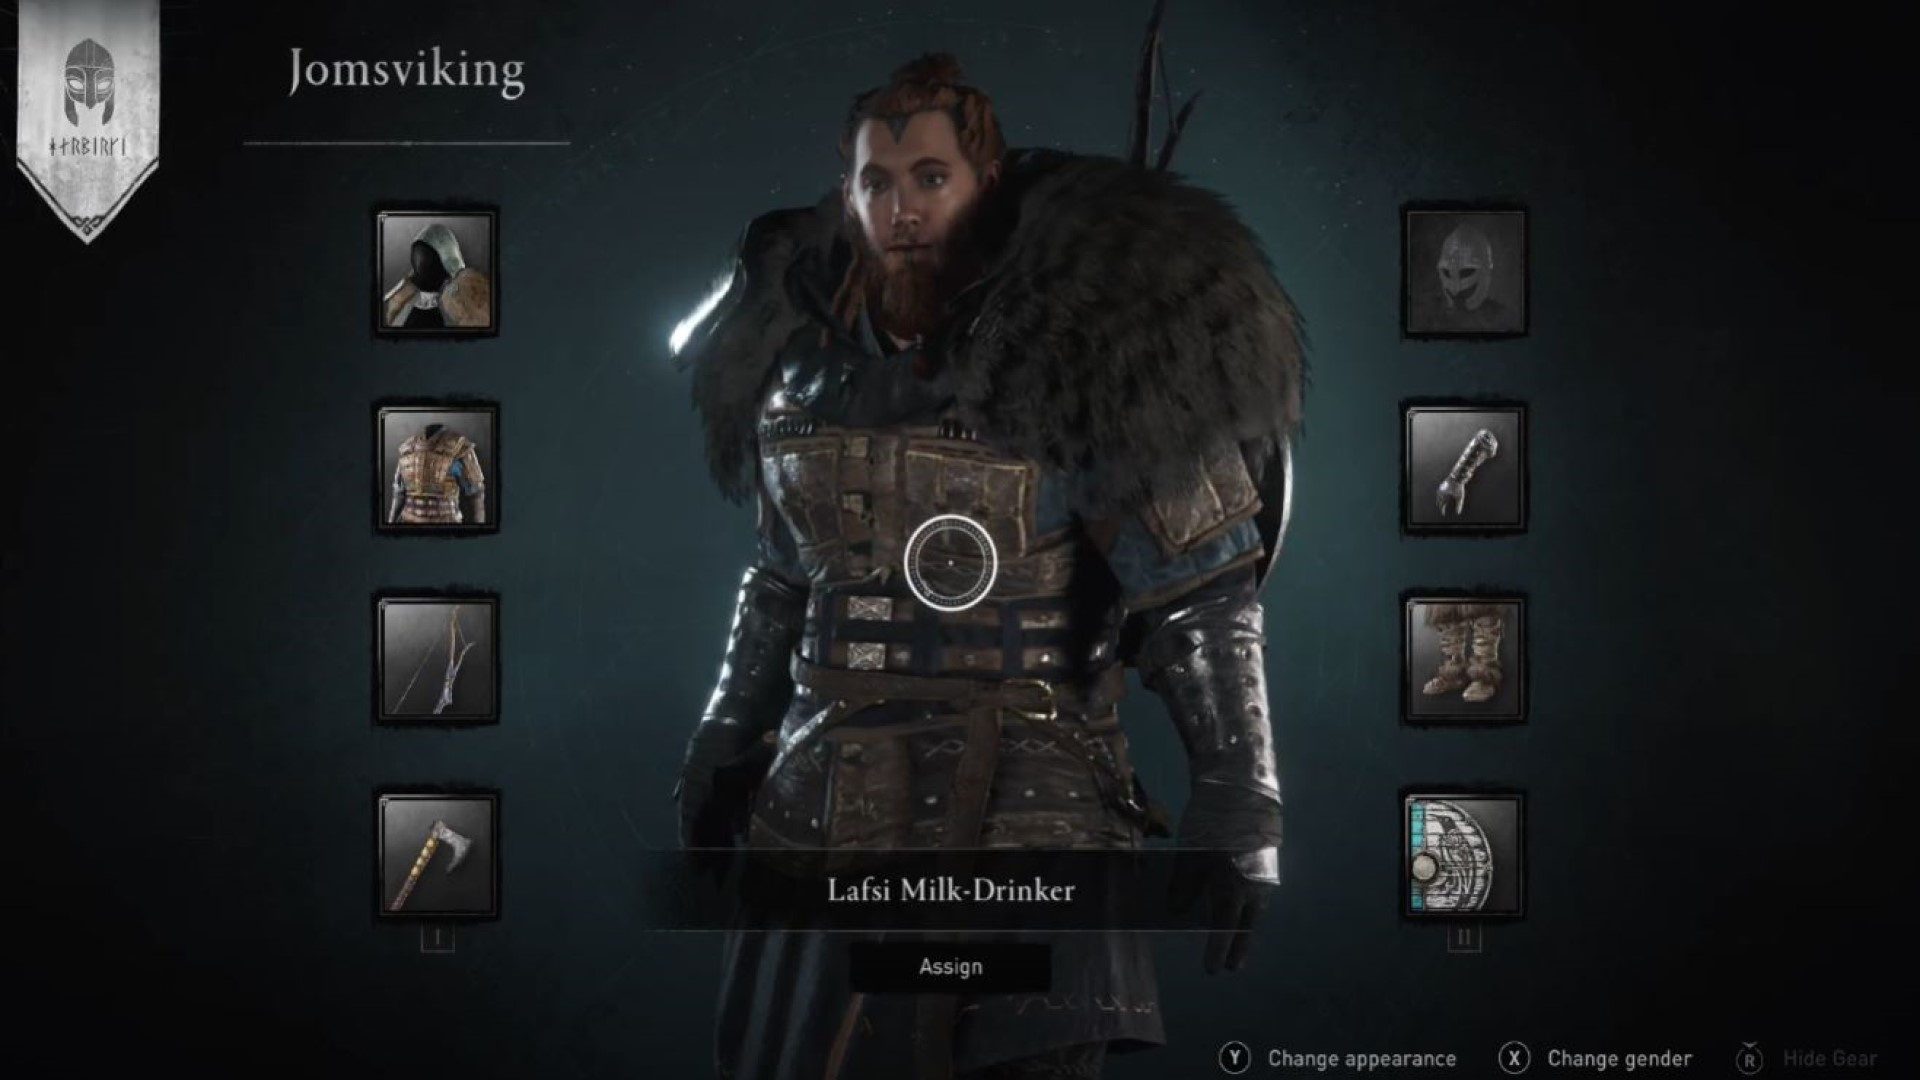 A look at the character creator in the Barracks. Here's big lad Lafsi Milk-Drinker.